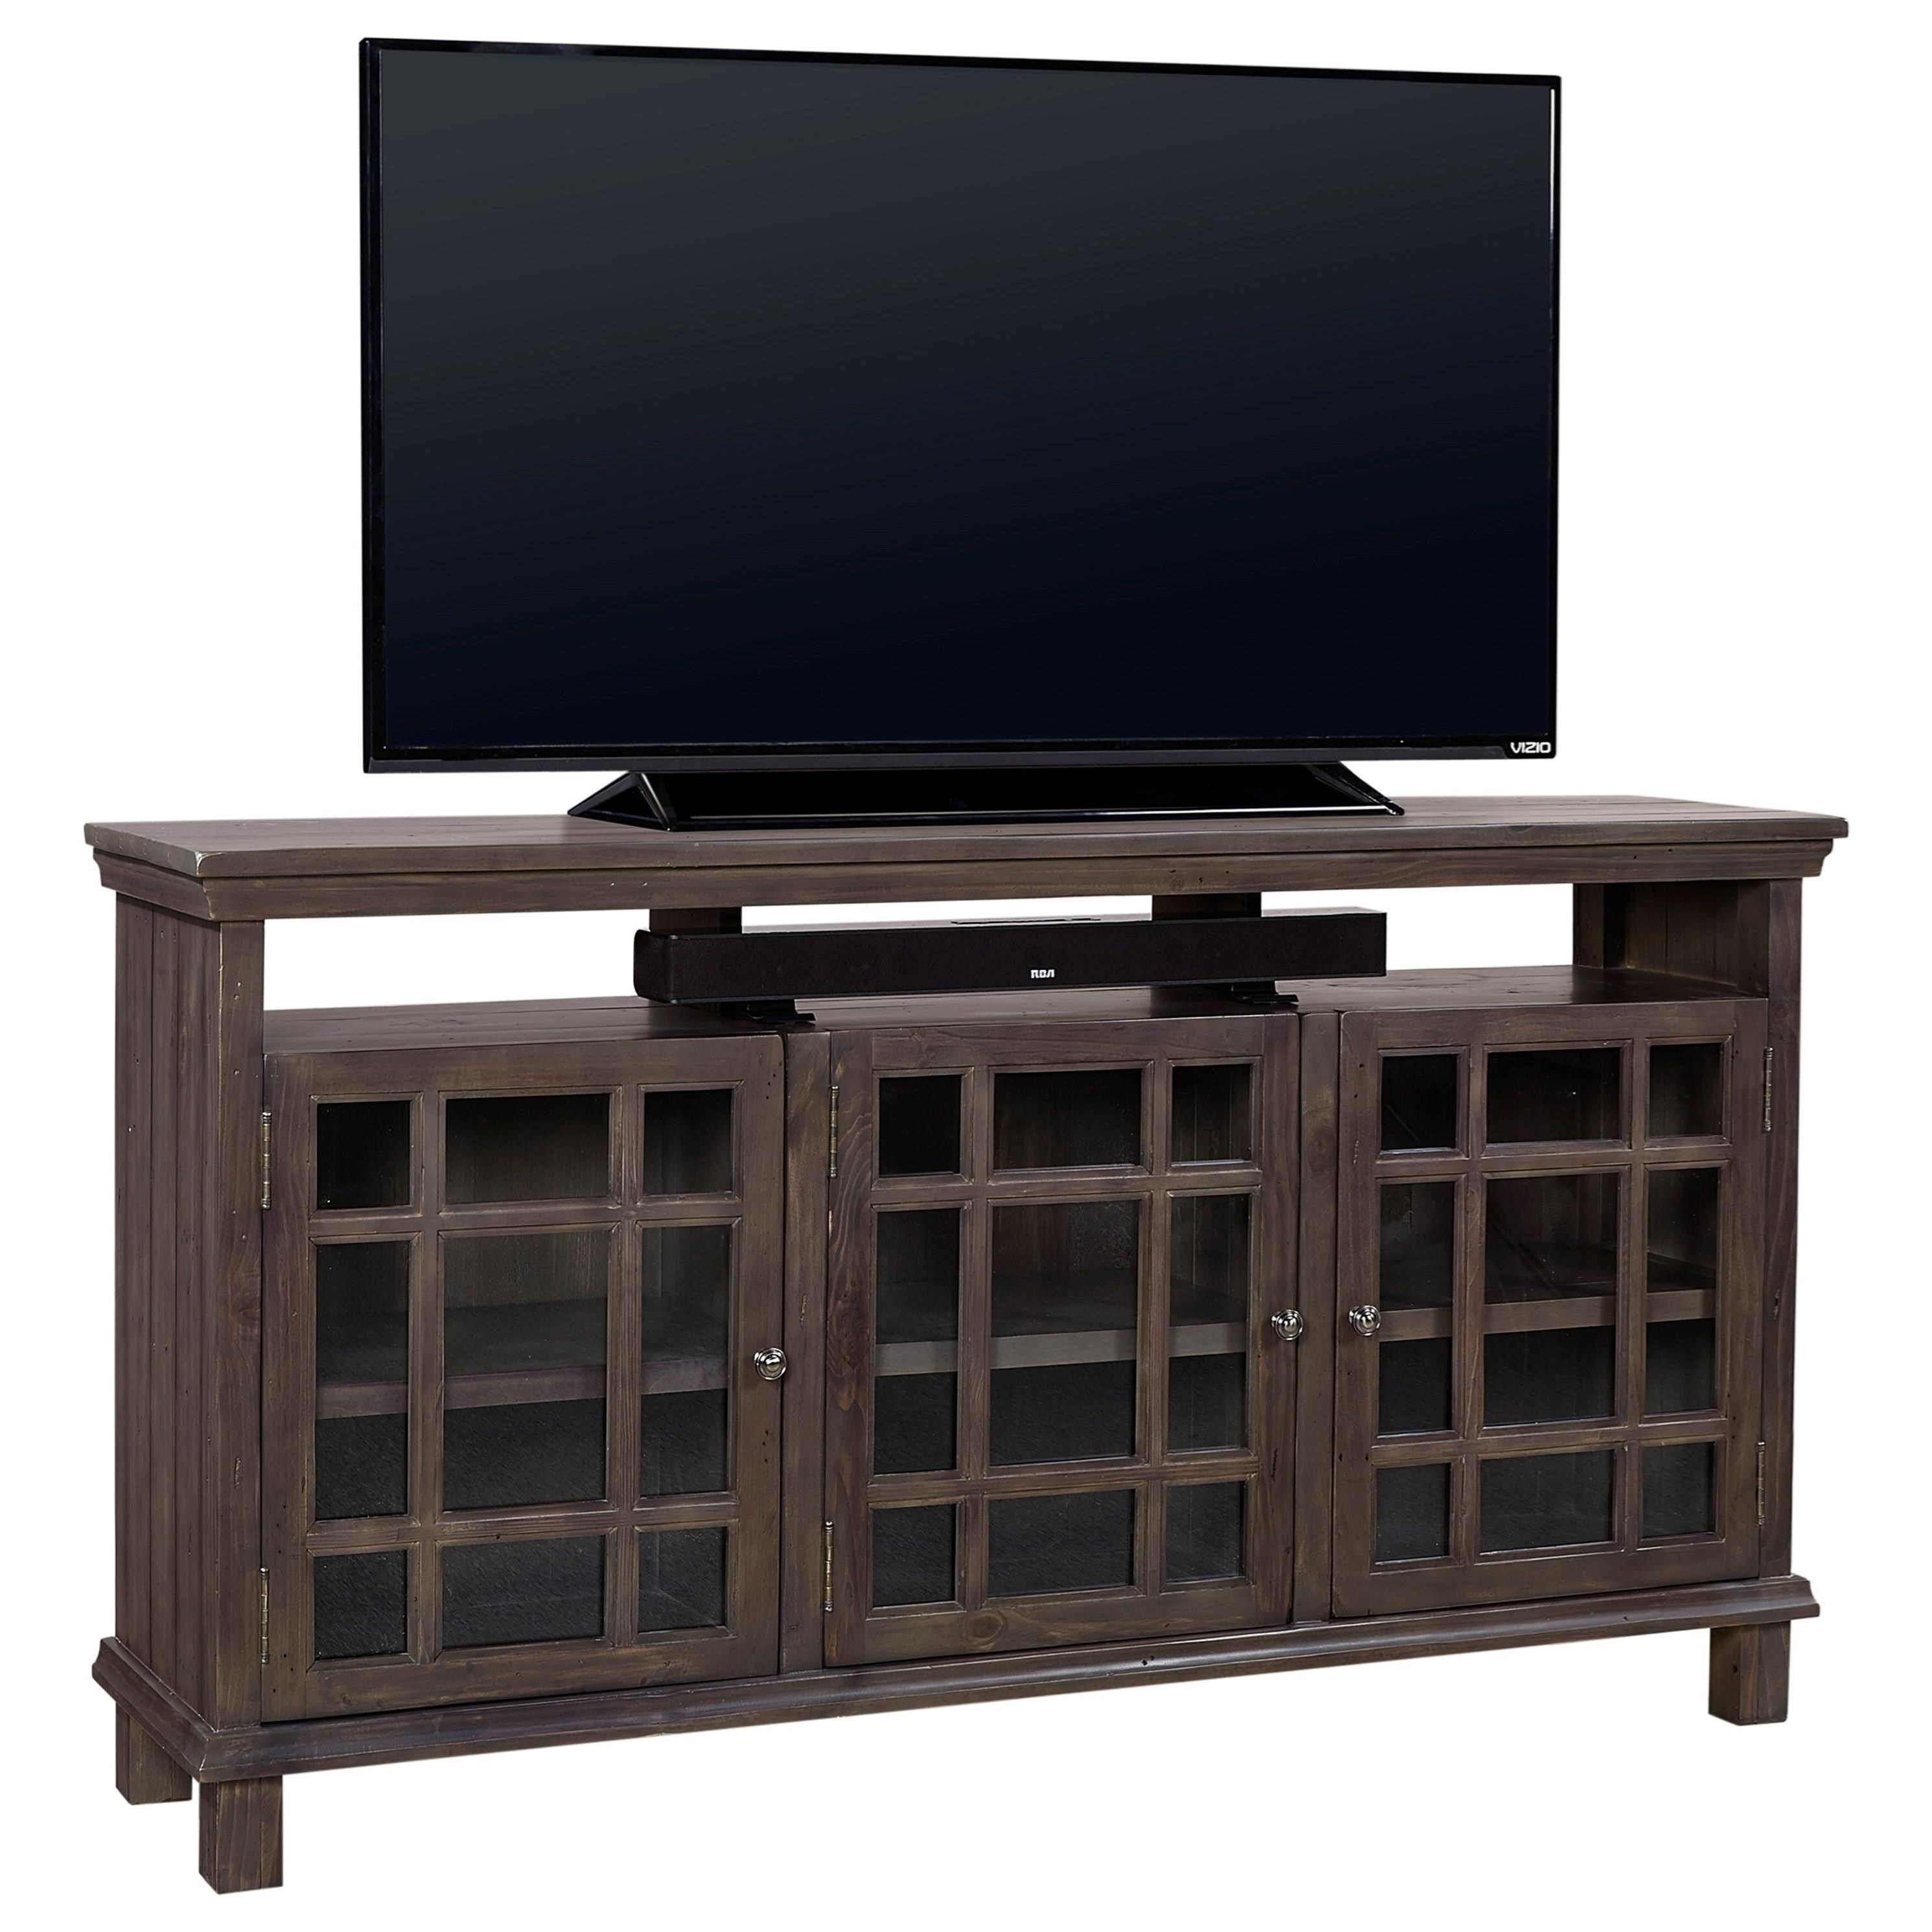 "Aspenhome Preferences 65"" Console  - Item Number: I44-265-SHI"